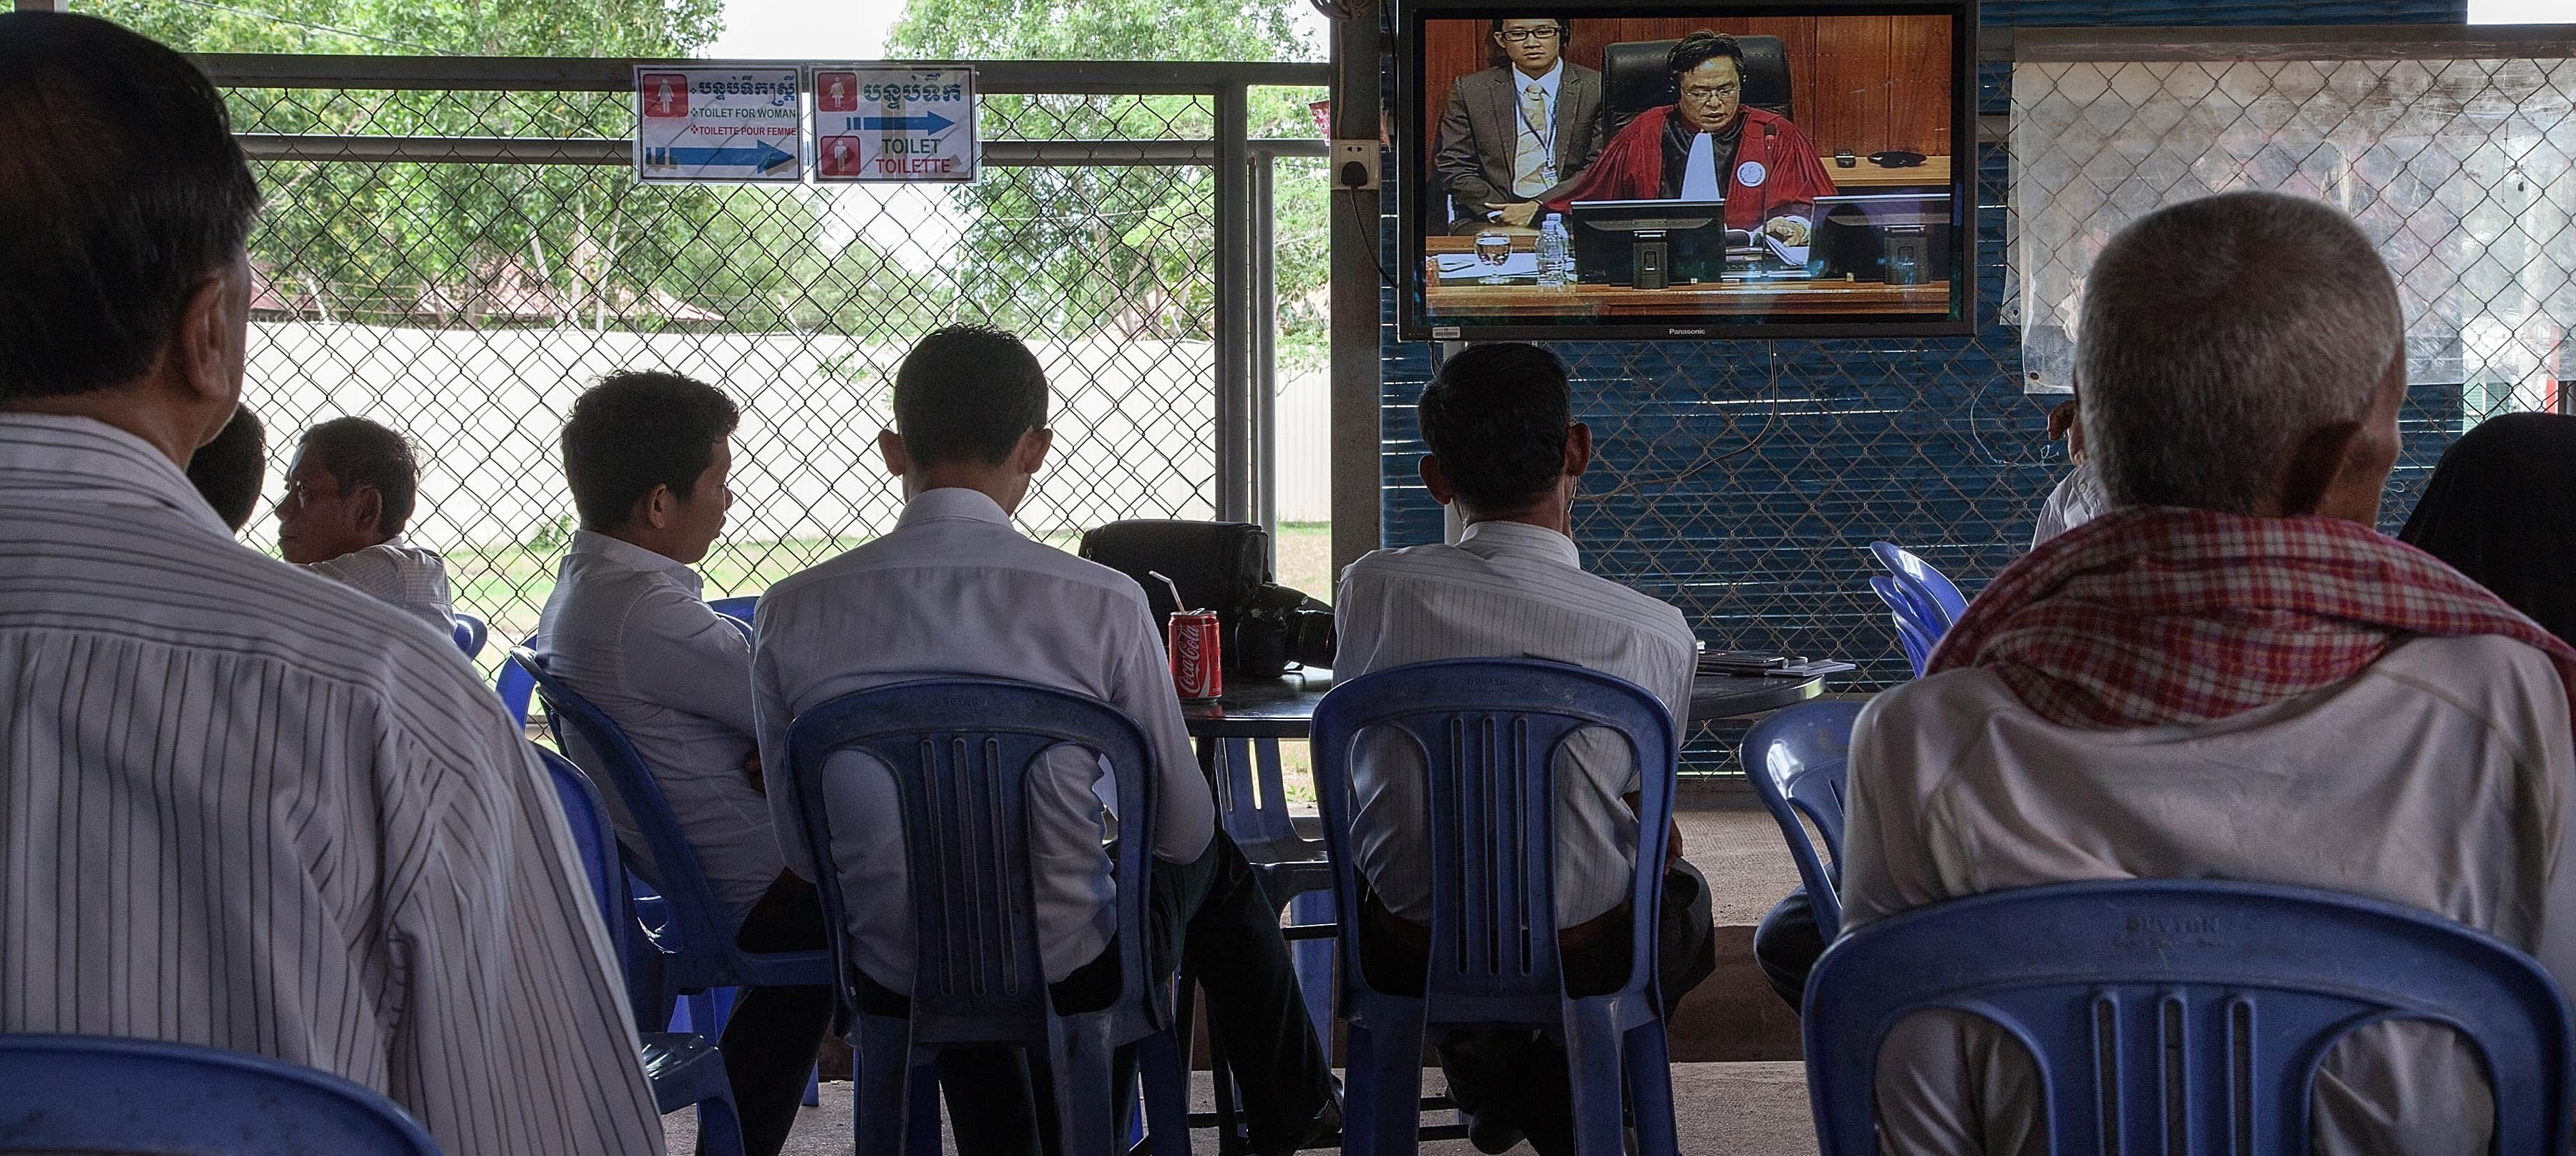 Cambodian survivors watching the guilty verdict for Nuon Chea and Khieu Samphan, August 2017 (Photo: Omar Havana/Getty Images)